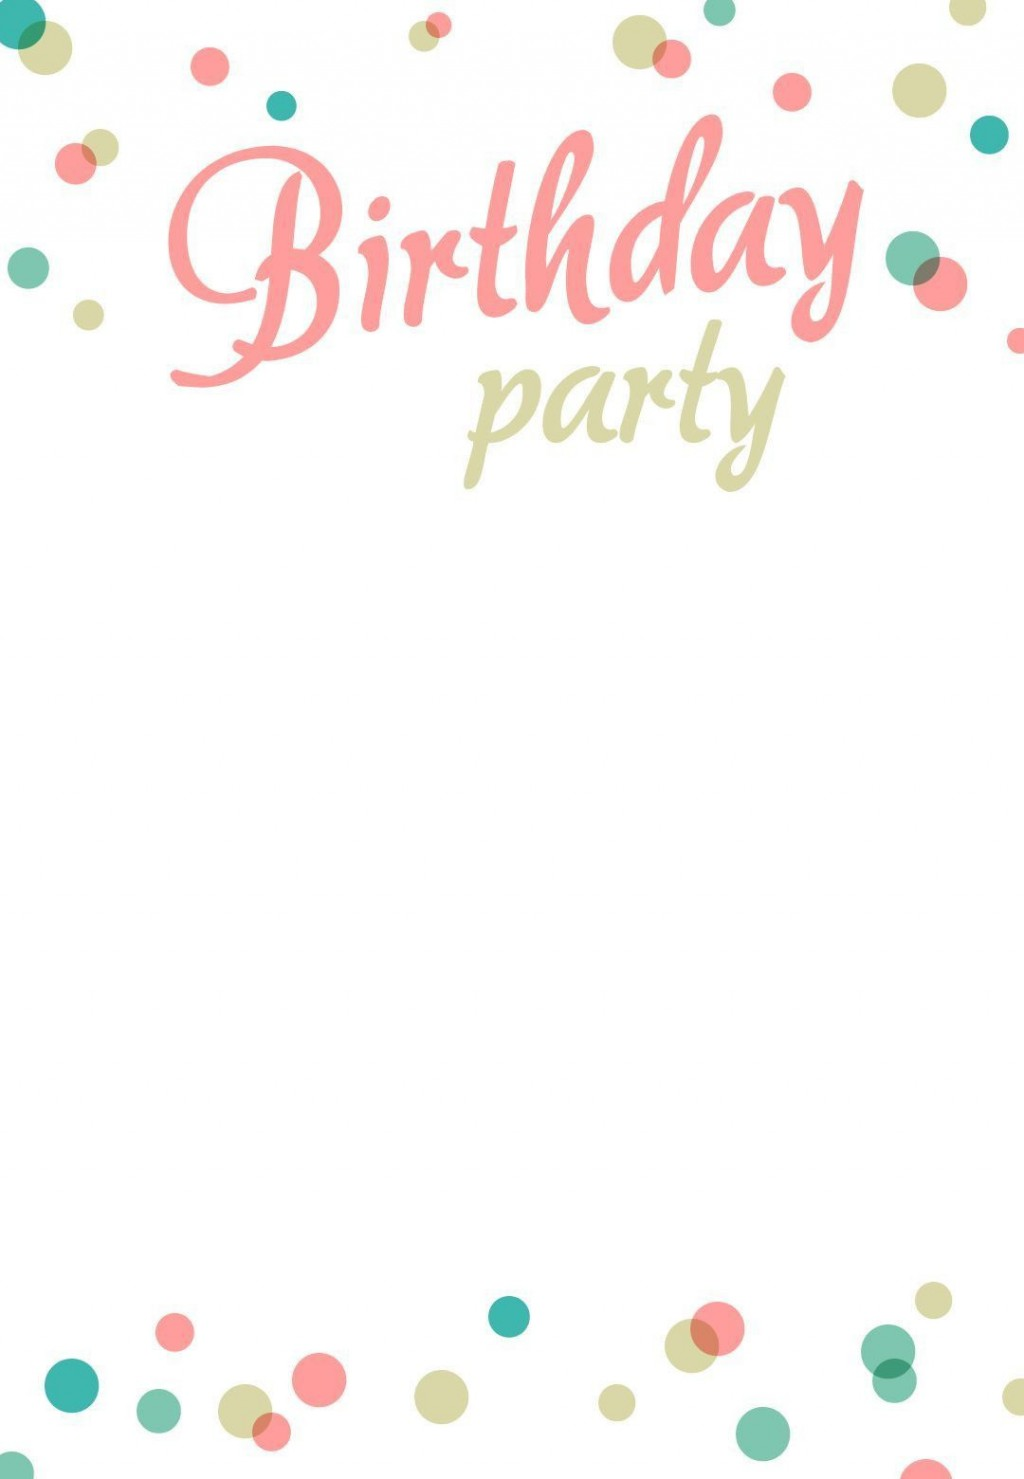 000 Fascinating Free Birthday Party Invitation Template High Definition  Templates Printable 16th Australia UkLarge